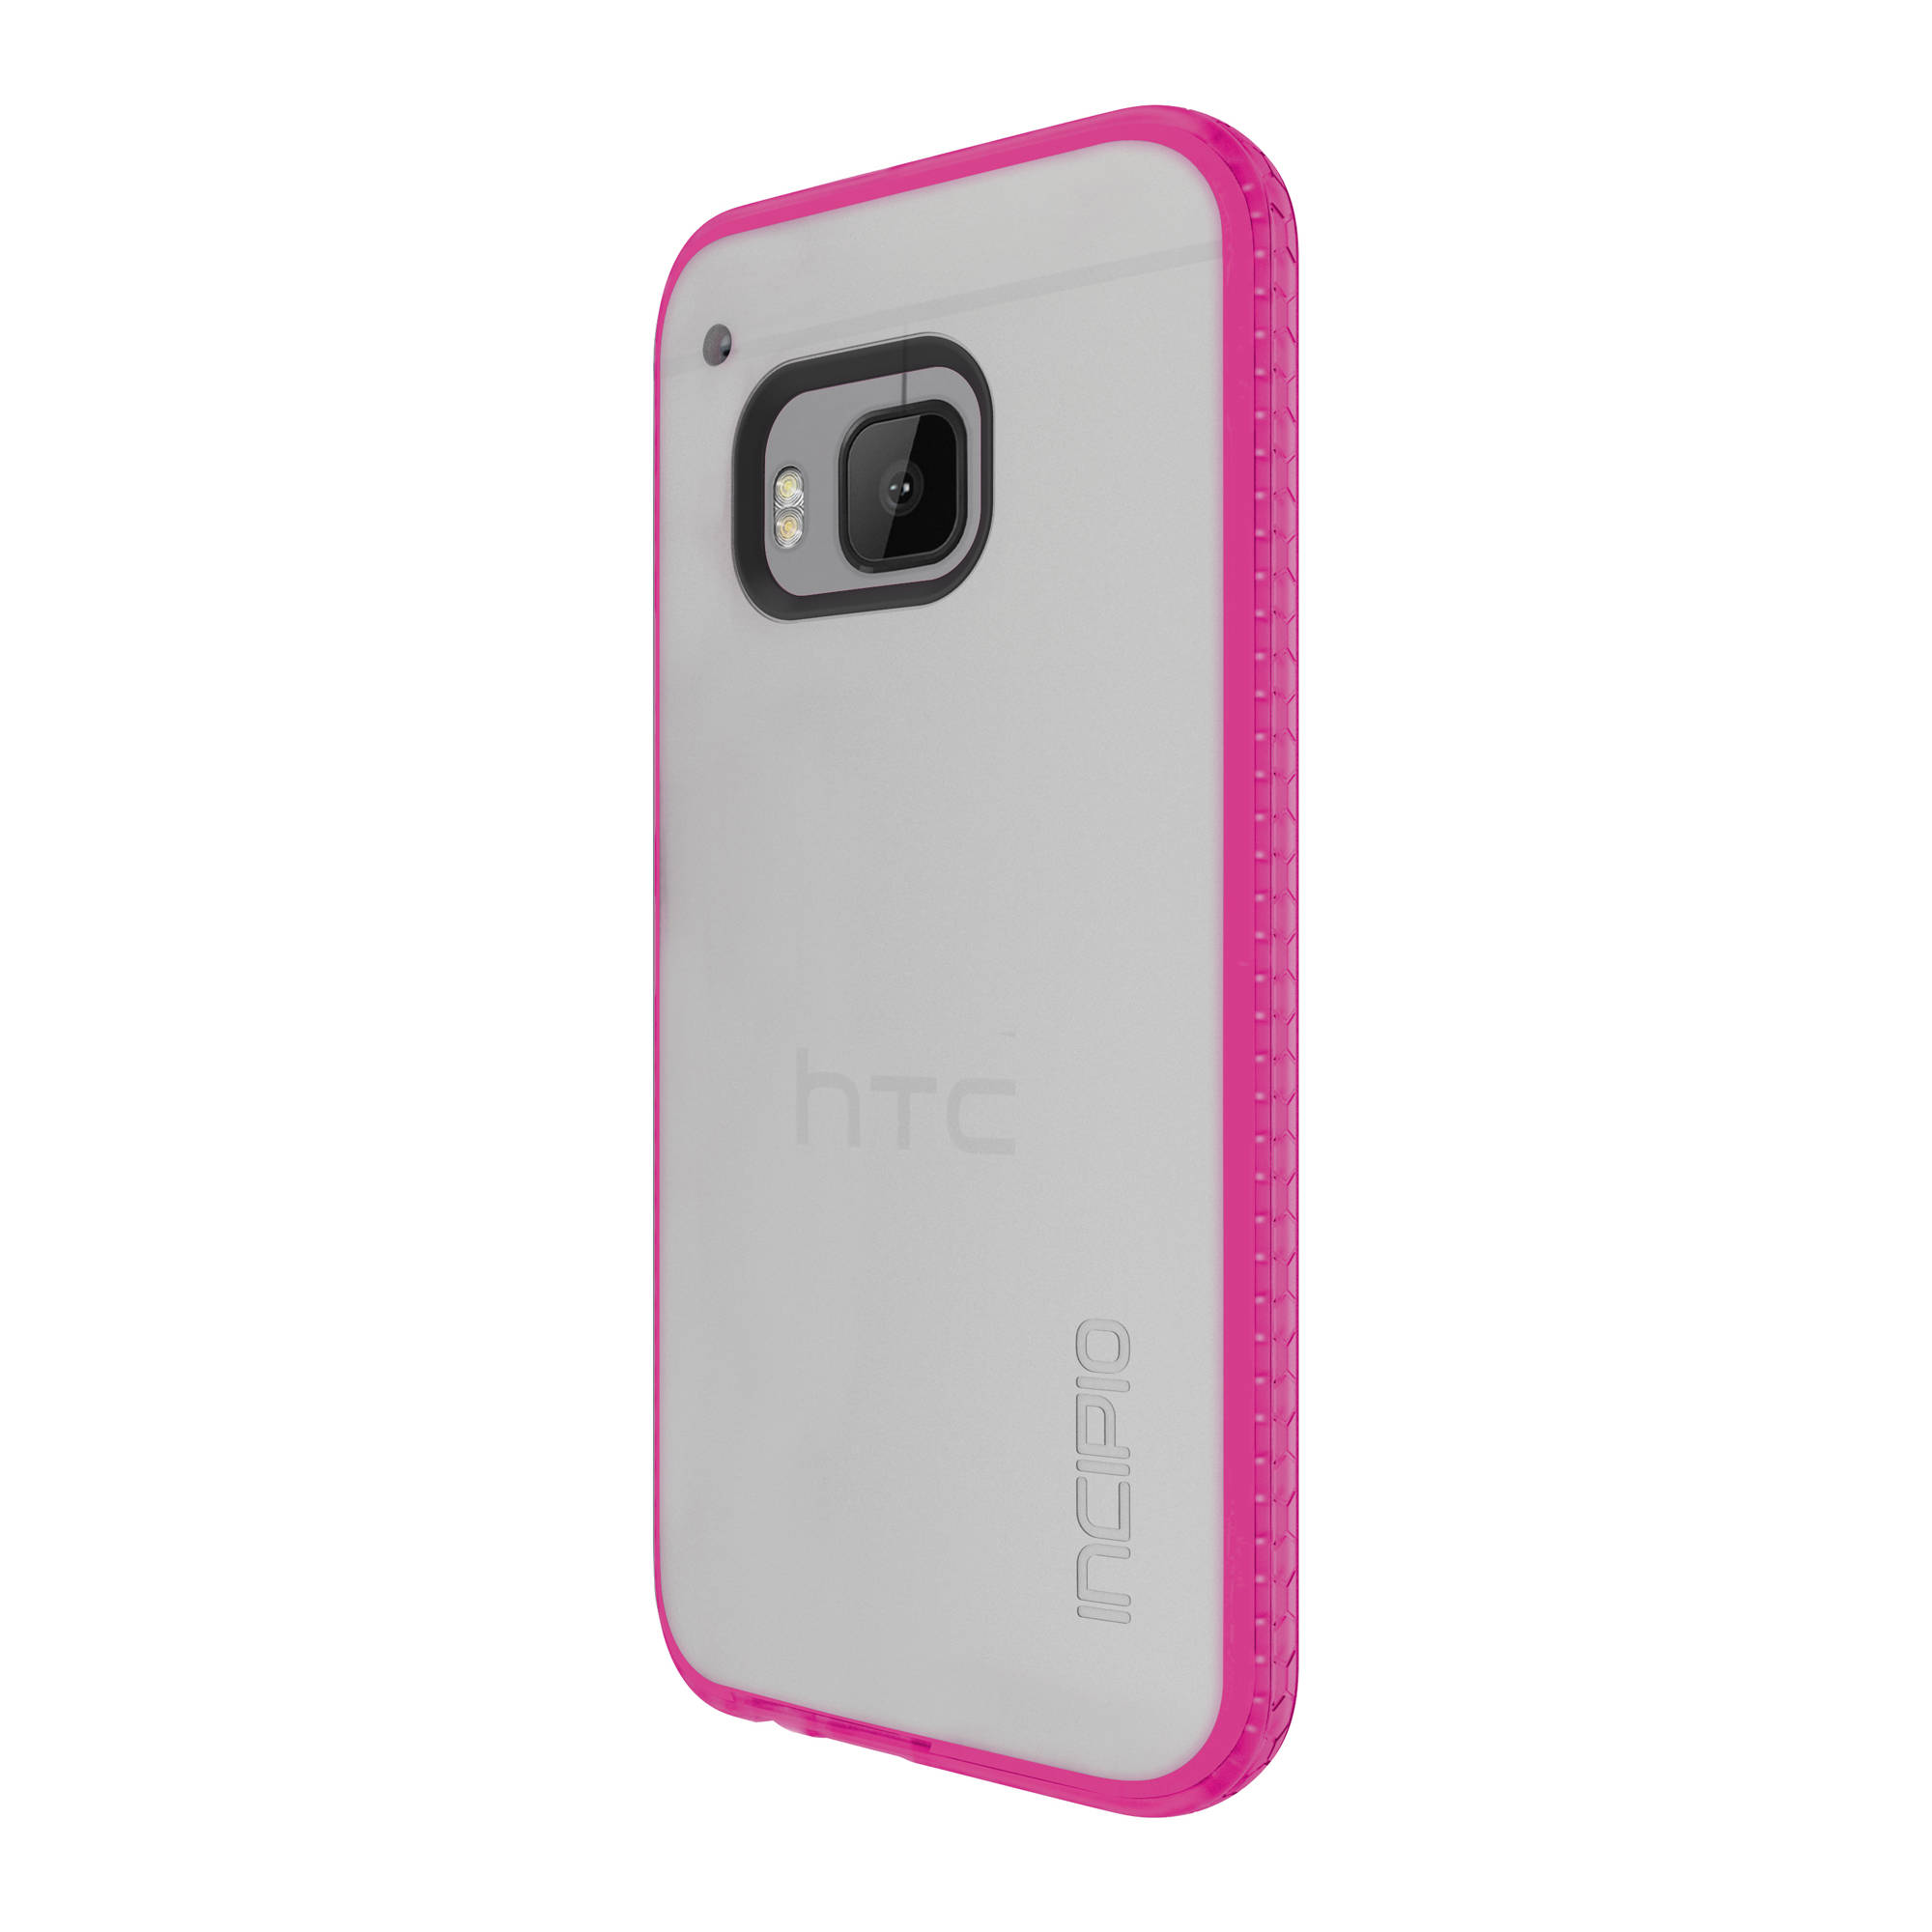 Incipio Octane Case for HTC One M9 - Frost/Neon Pink